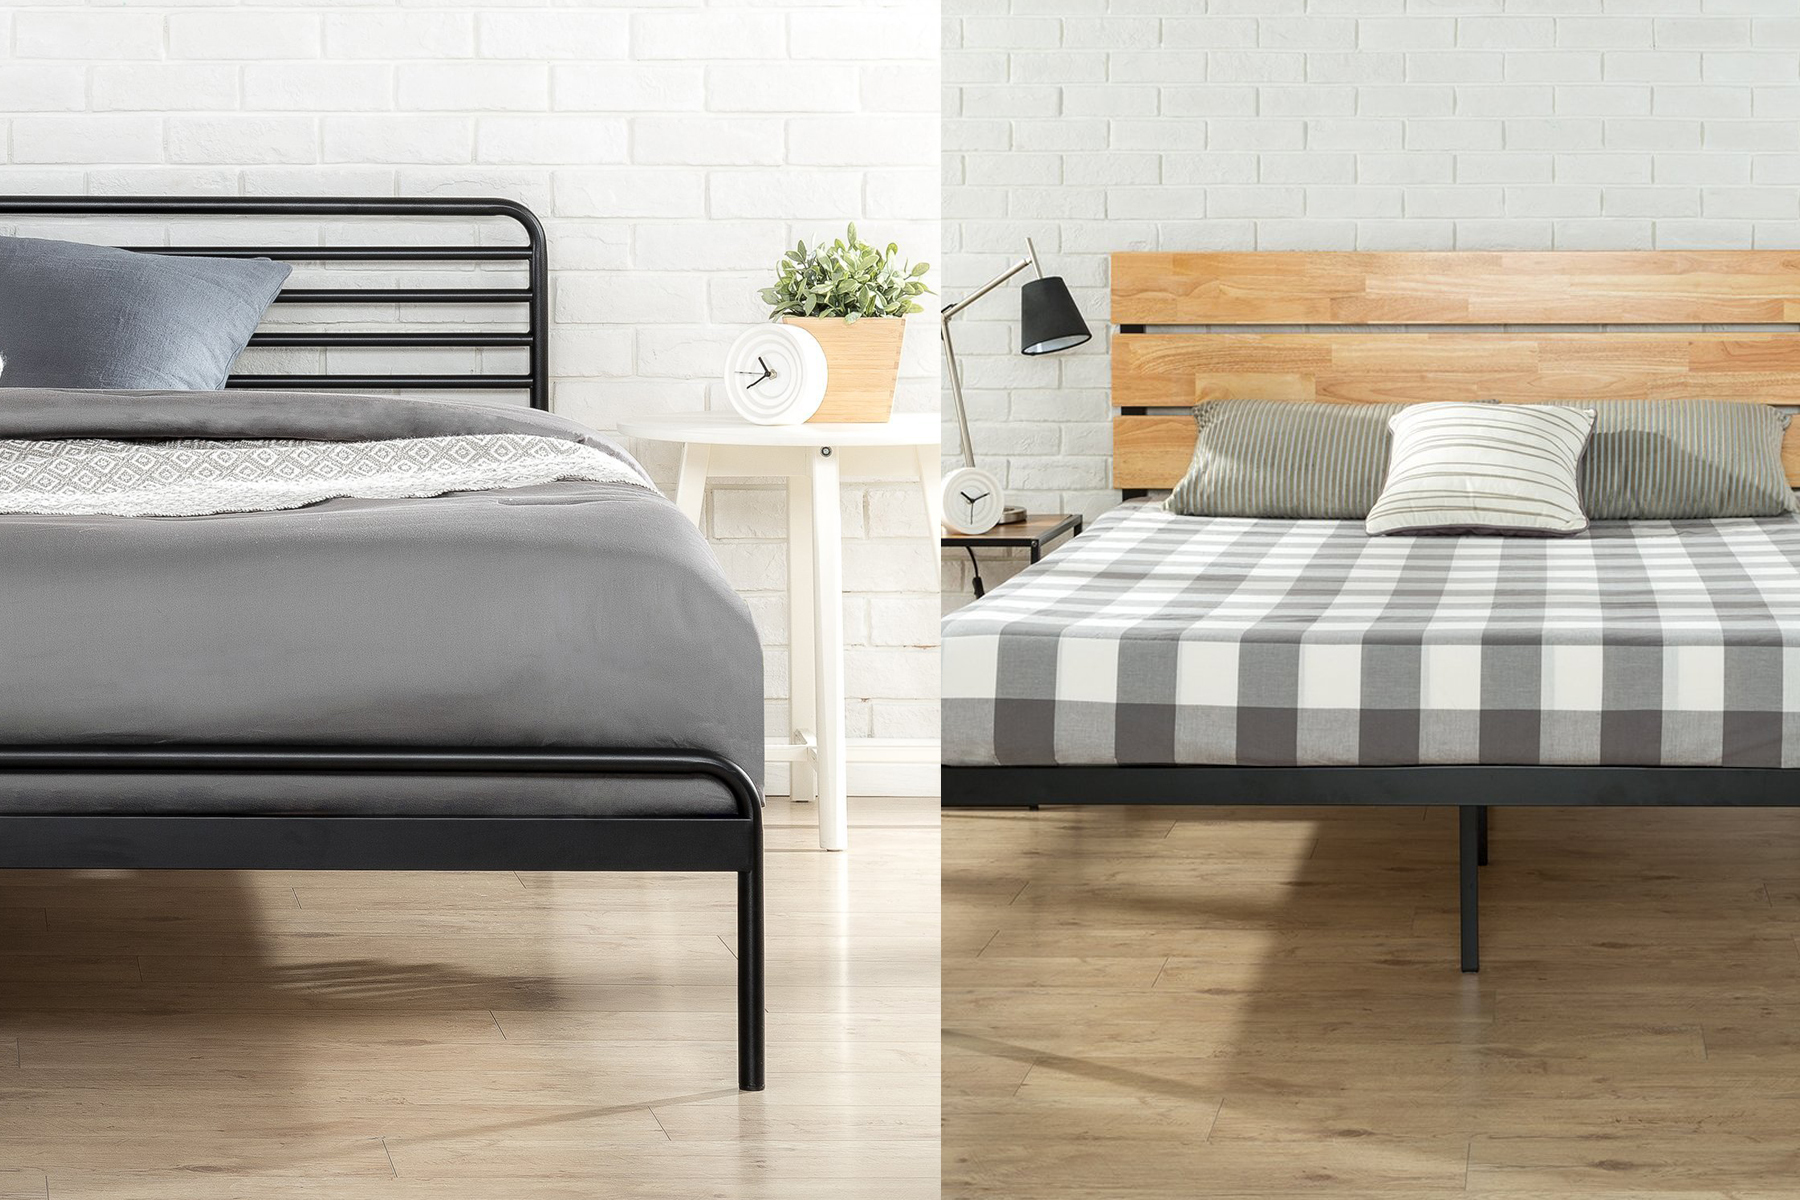 Z Beds For Adults 17 Of The Best Bed Frames You Can Get On Amazon